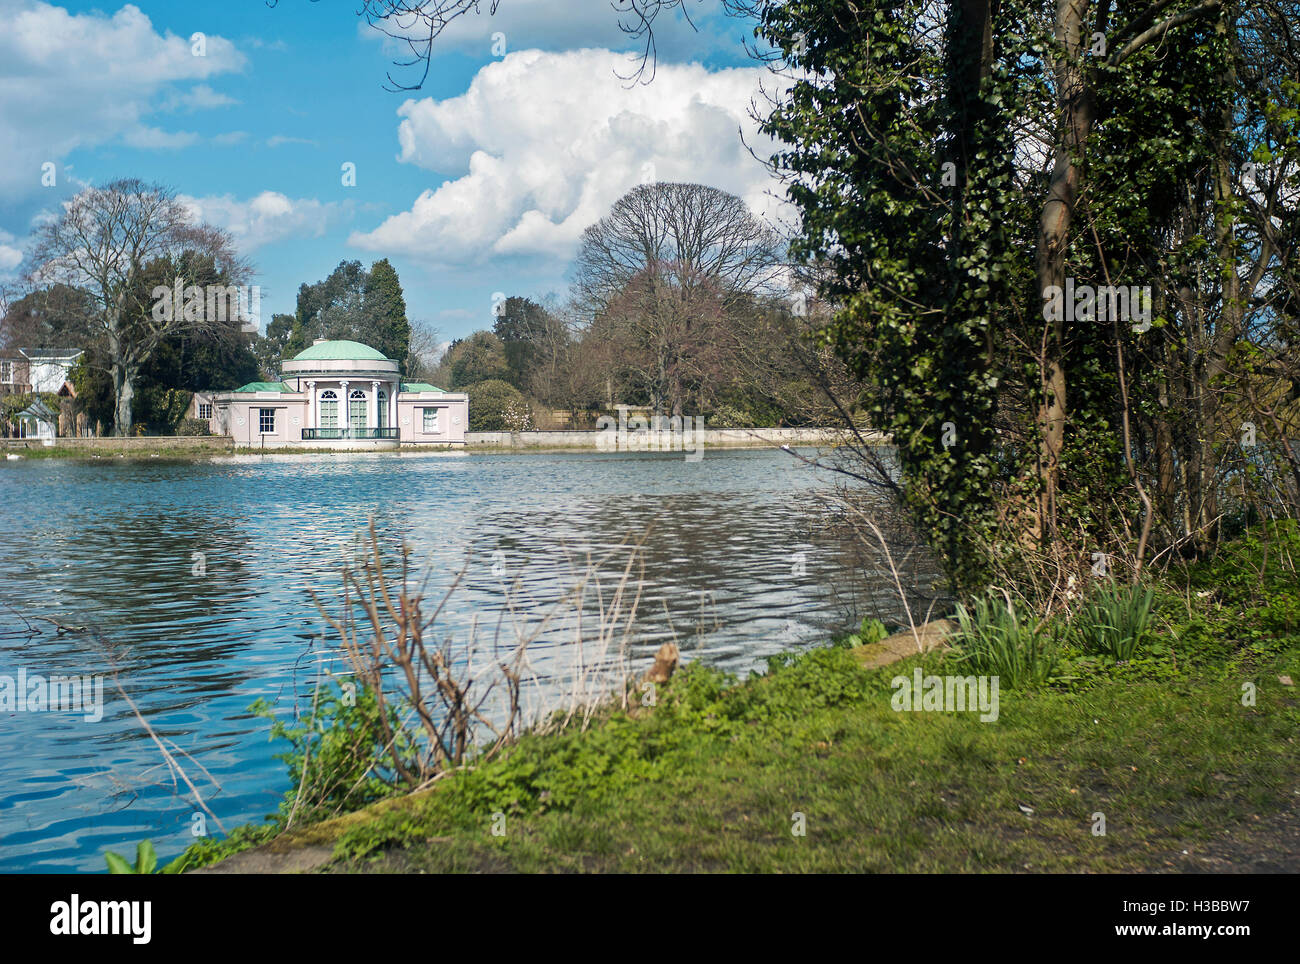 Syon Park pavilion or boat-house on the river Thames, in the grounds of Syon house, London England - Stock Image